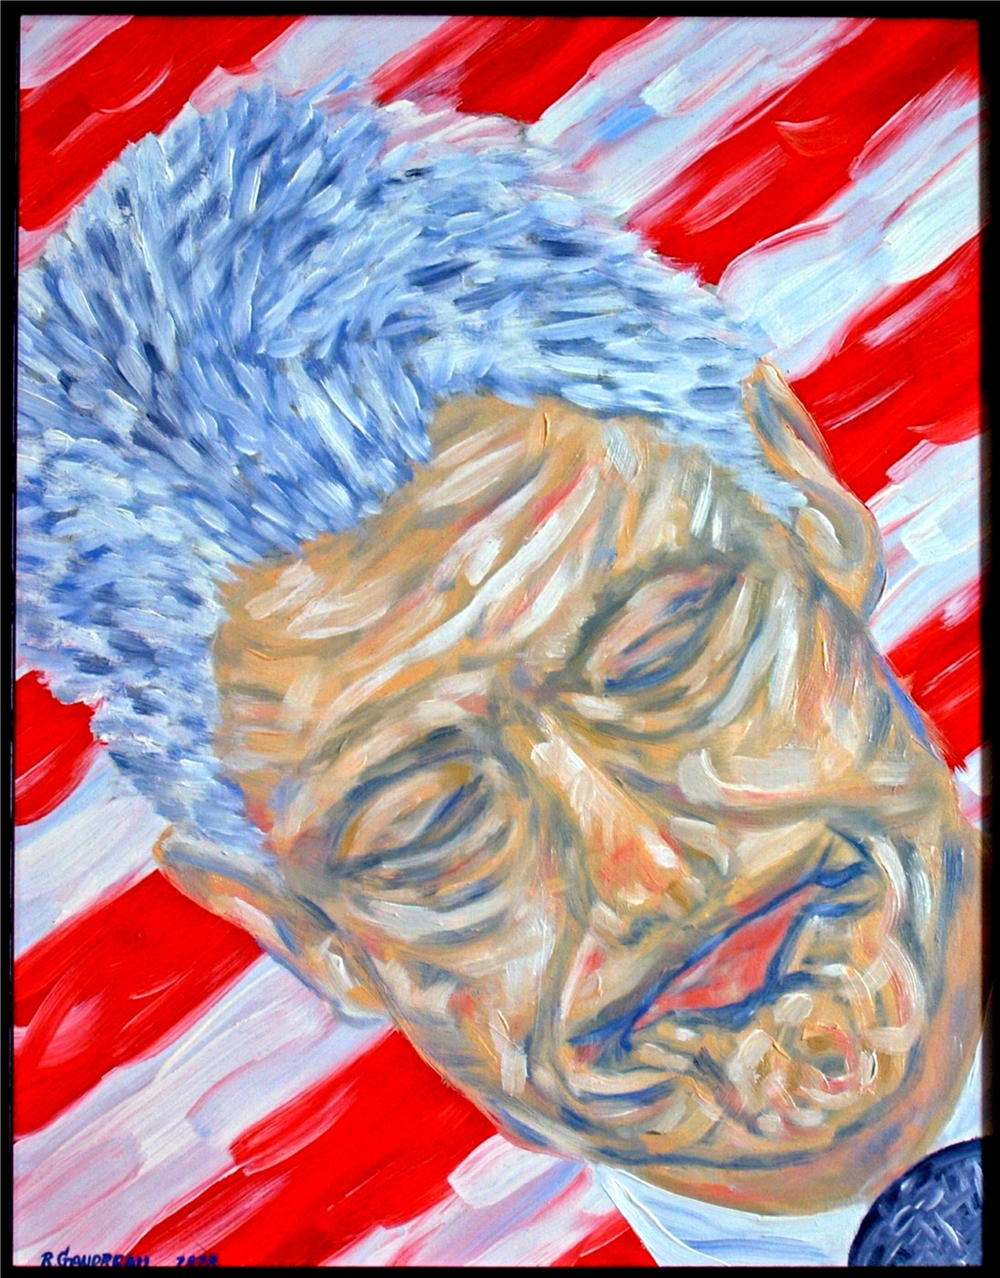 President Clintons Favorite Face 1998 oil on masonite panel 14 x 11 inches